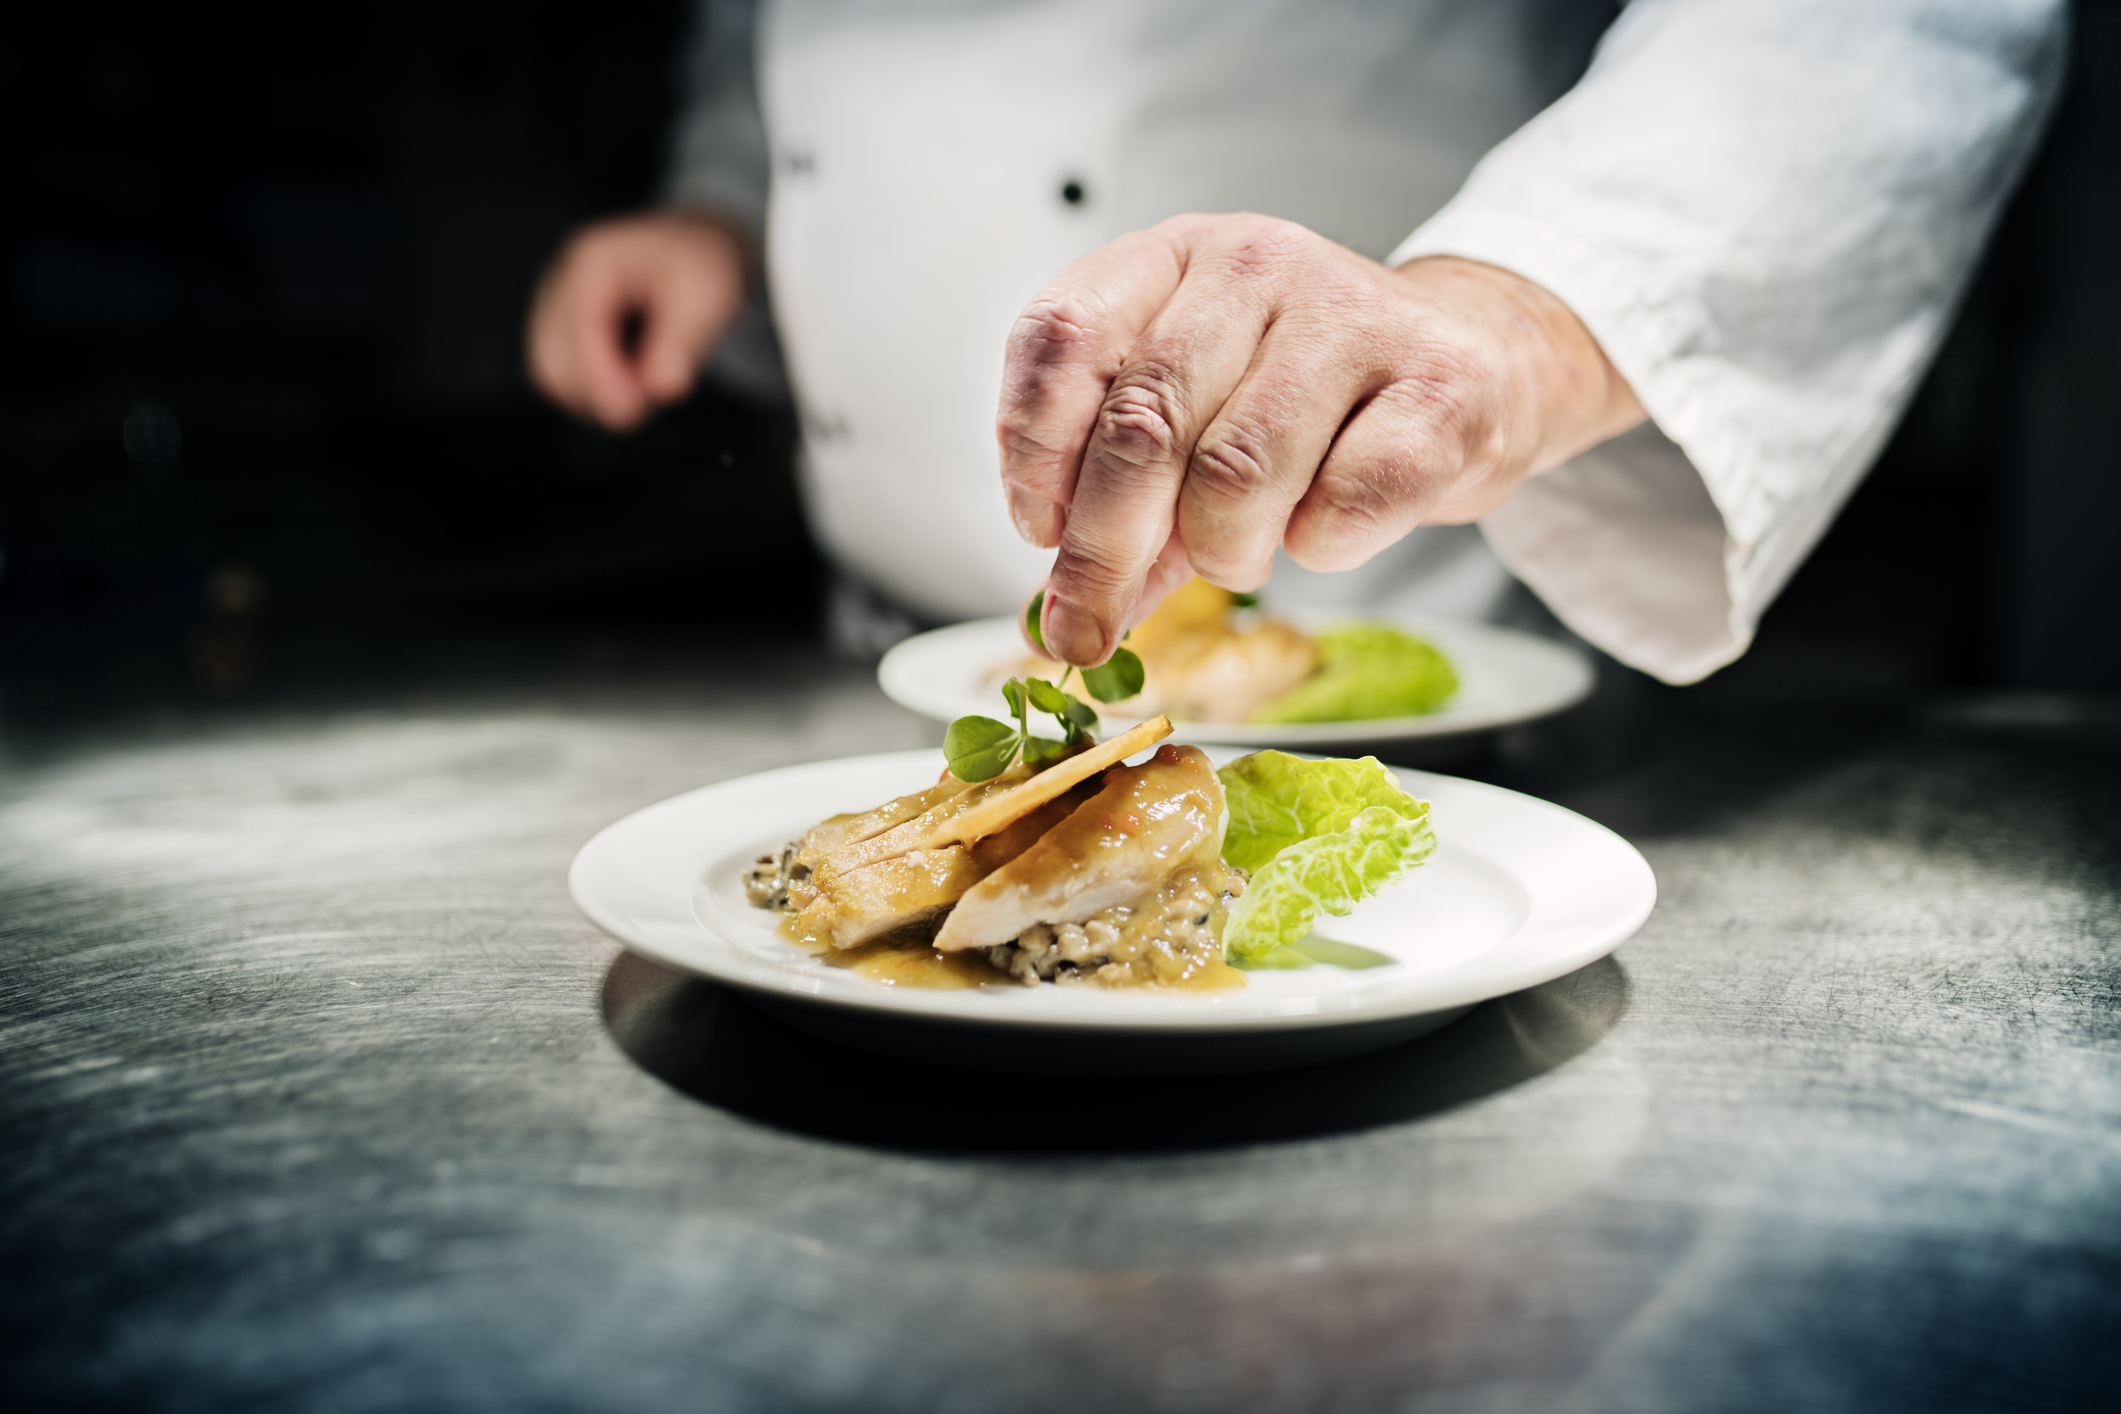 In general restaurateurs and chefs who dare push boundaries with high quality cooking and ingredients are seemingly penalised by their audience